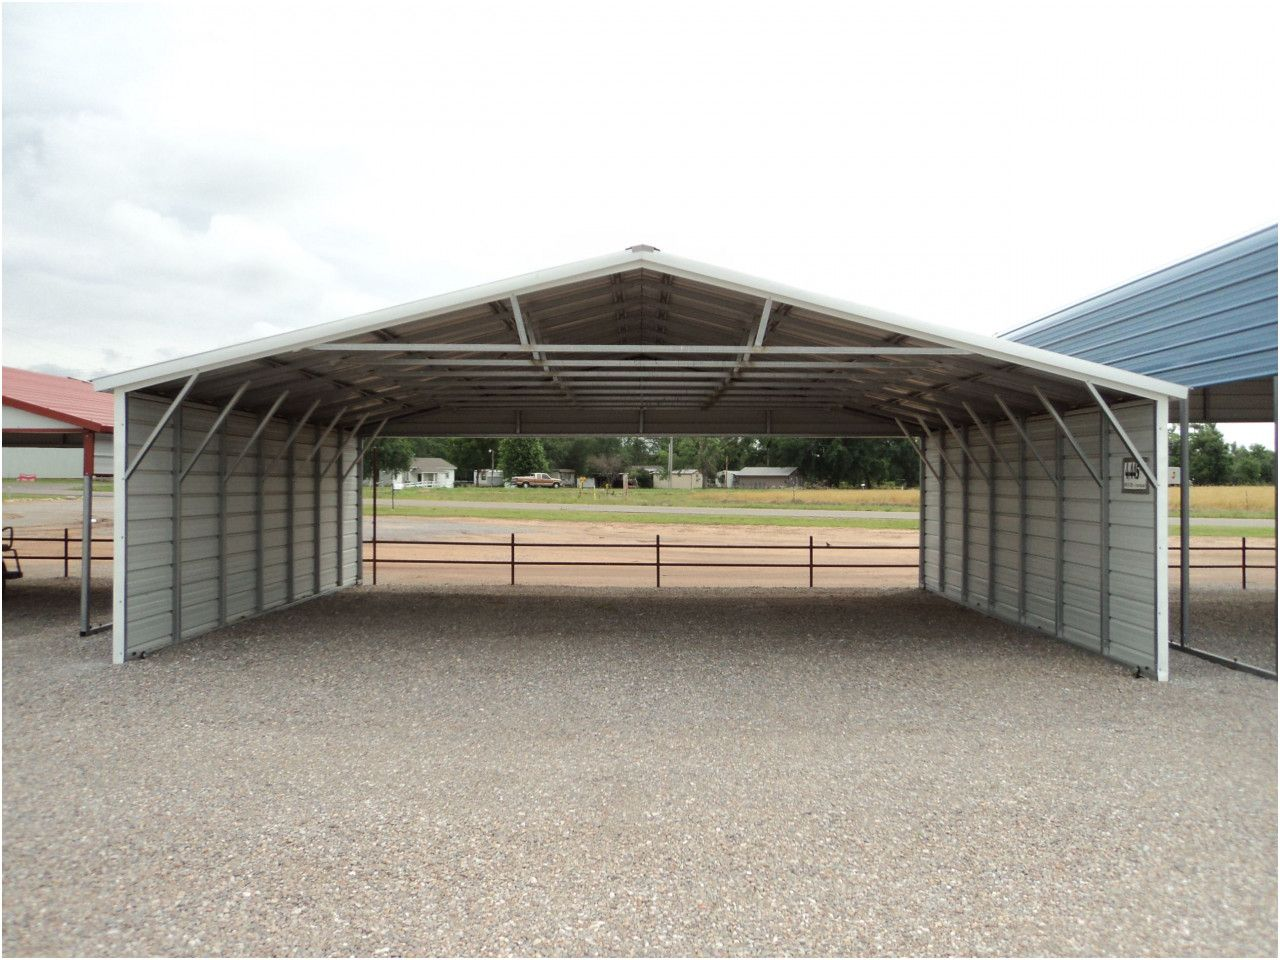 Simple 10x20 Portable Garage in 2020 Aluminum carport